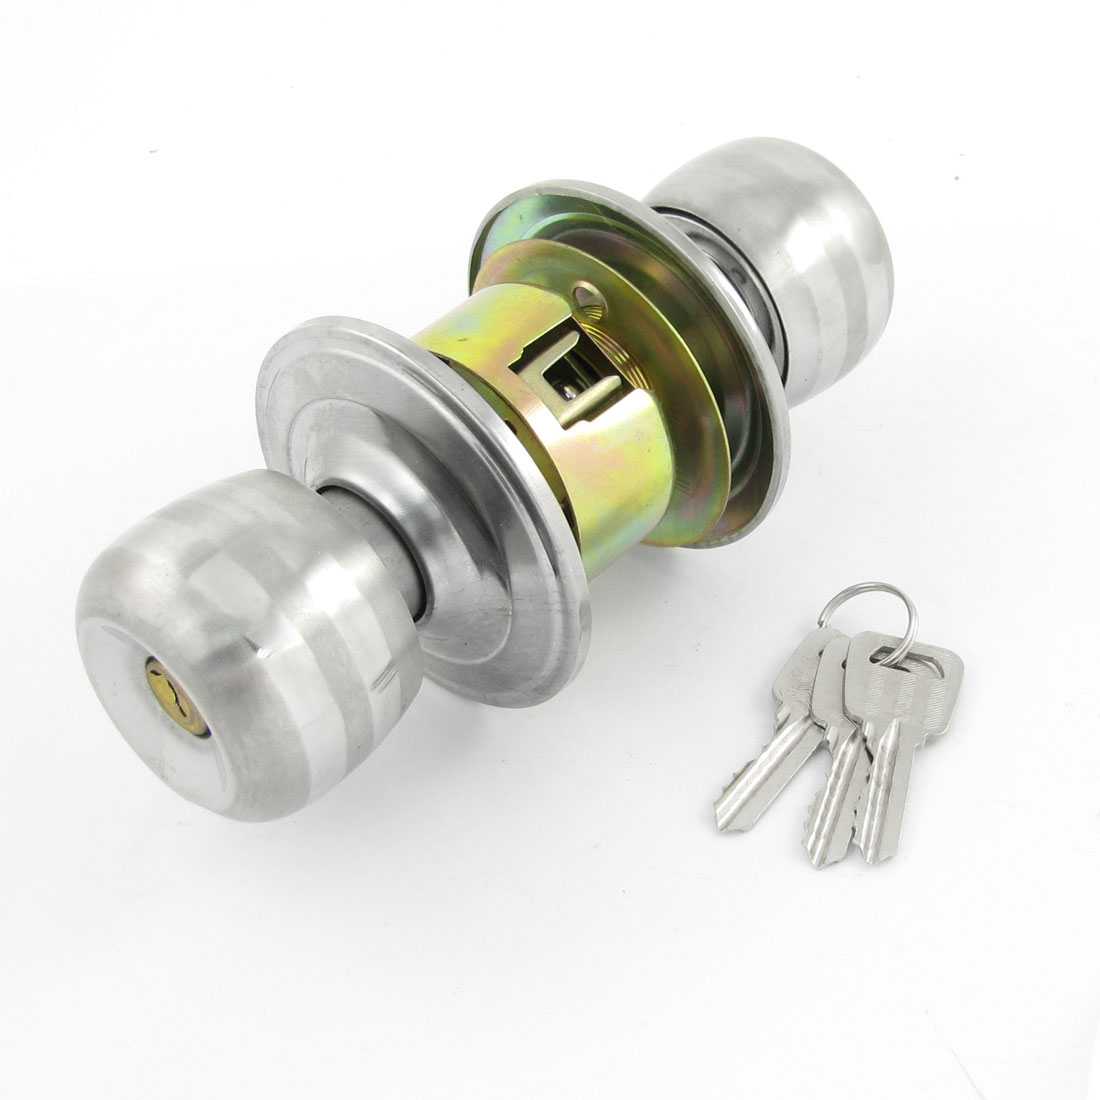 Home OfficeSilver Tone Stainless Steel Key Locking Locker Door Knob Lock